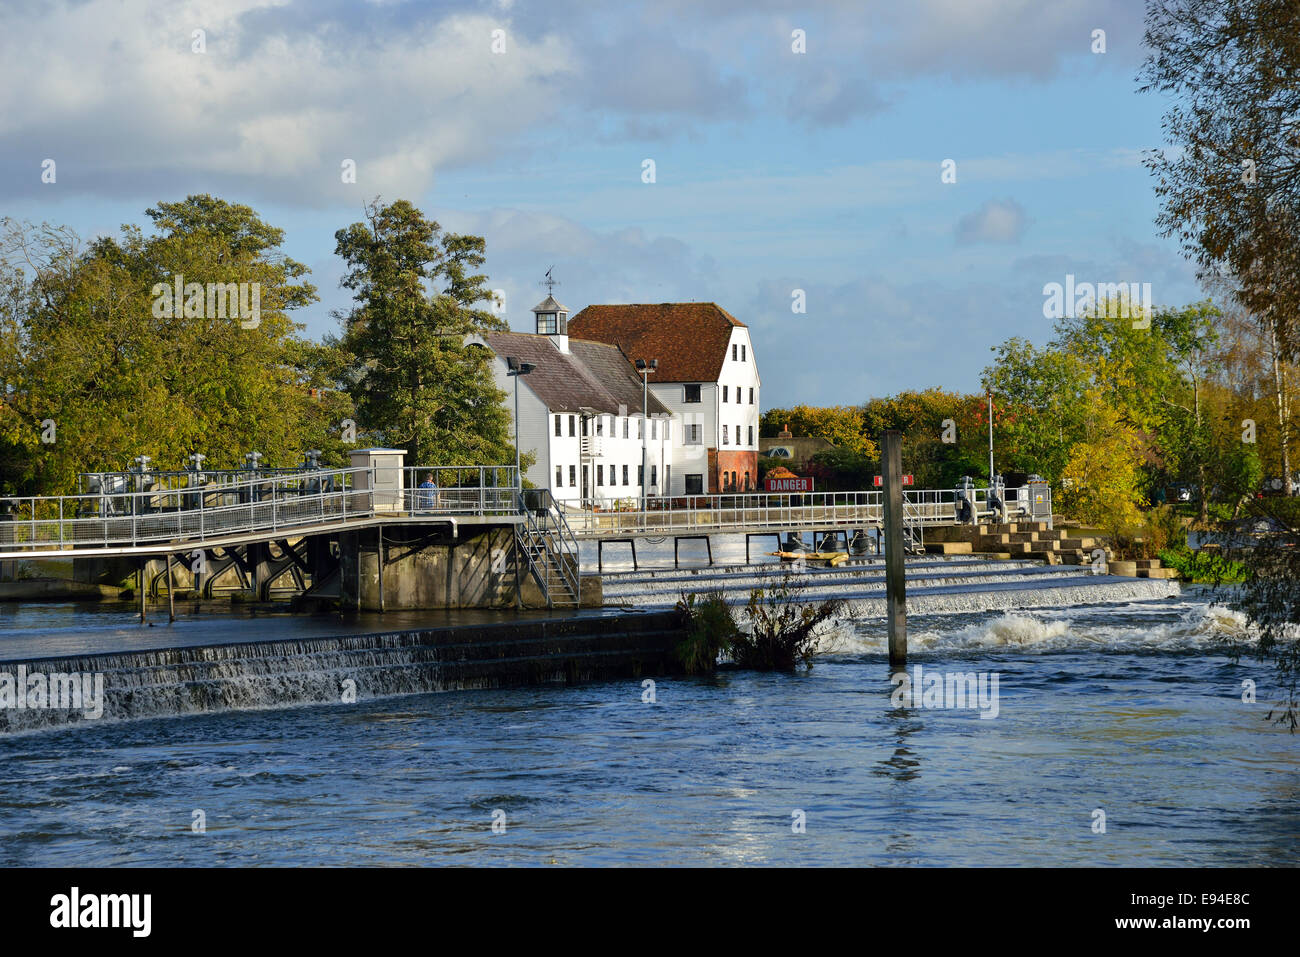 Looking across to the historic Hambleden Mill and weir on the River Thames, Mill End,  Hambledon, Buckinghamshire,England - Stock Image